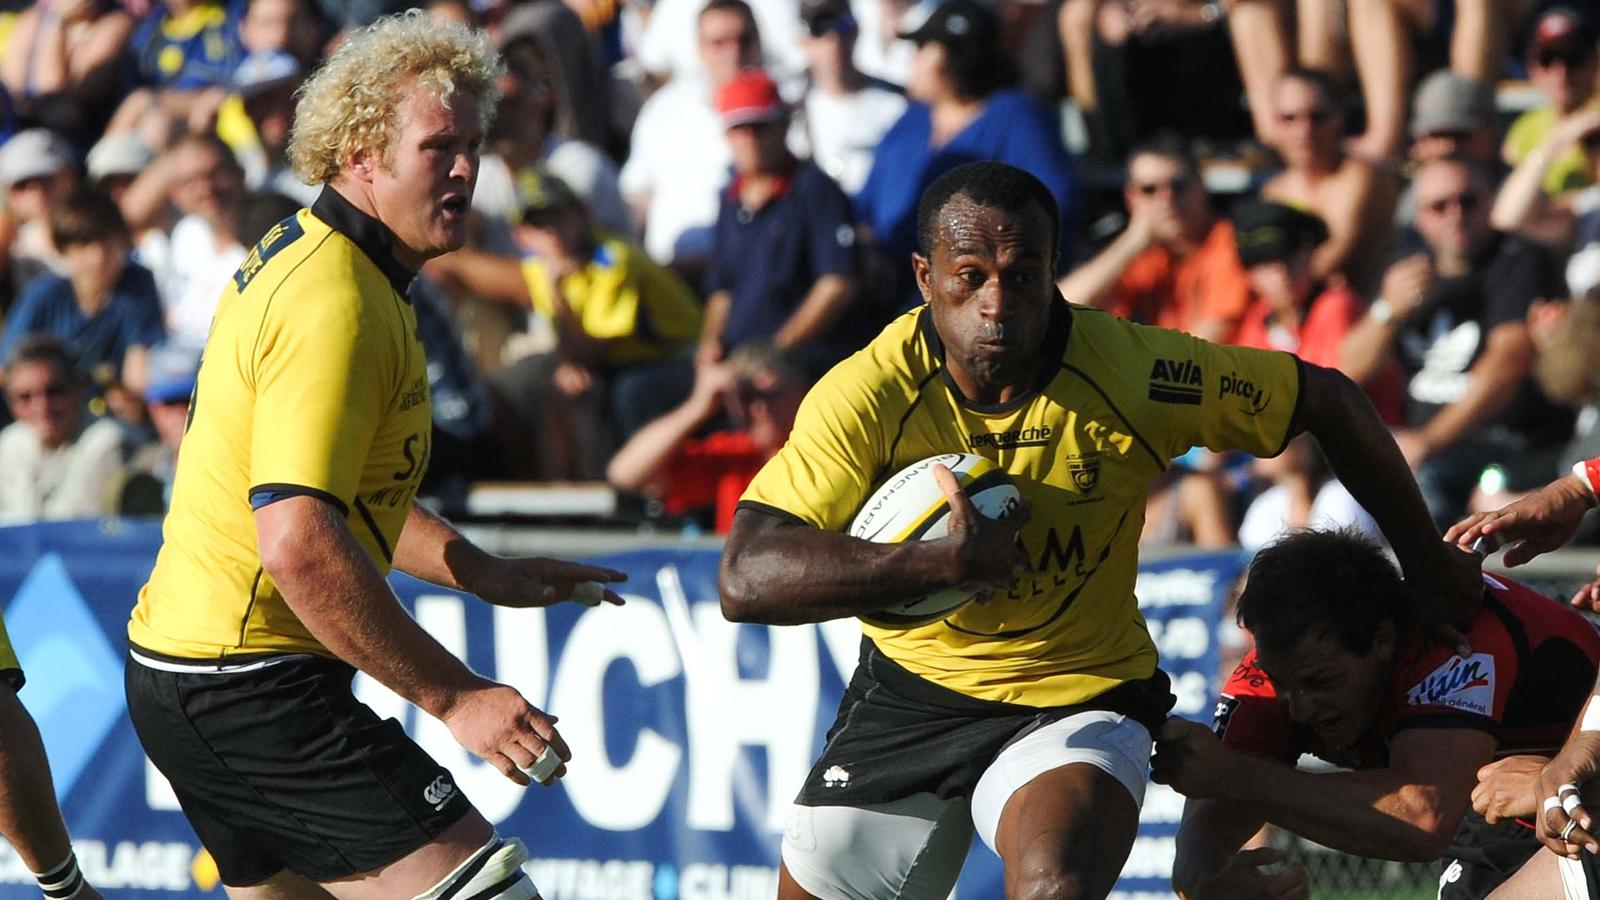 Rugby Top 14 La Rochelle Castres Olympique en direct live streaming